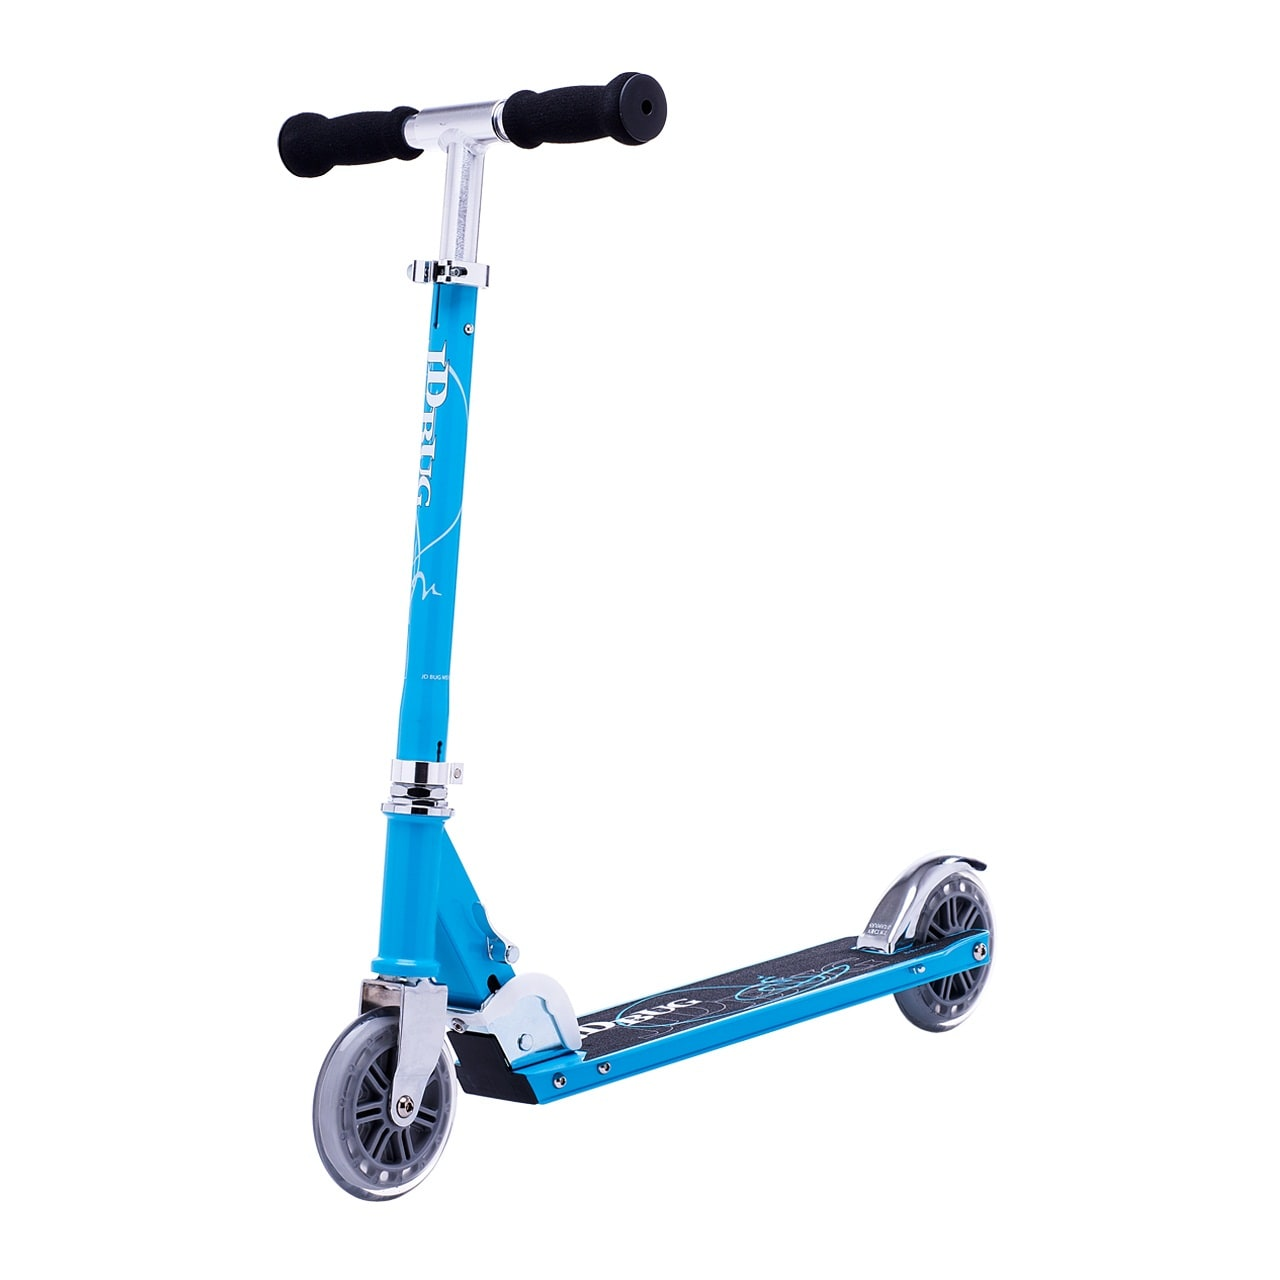 JD Bug Classic Street 120 Folding Scooter  Sky Blue